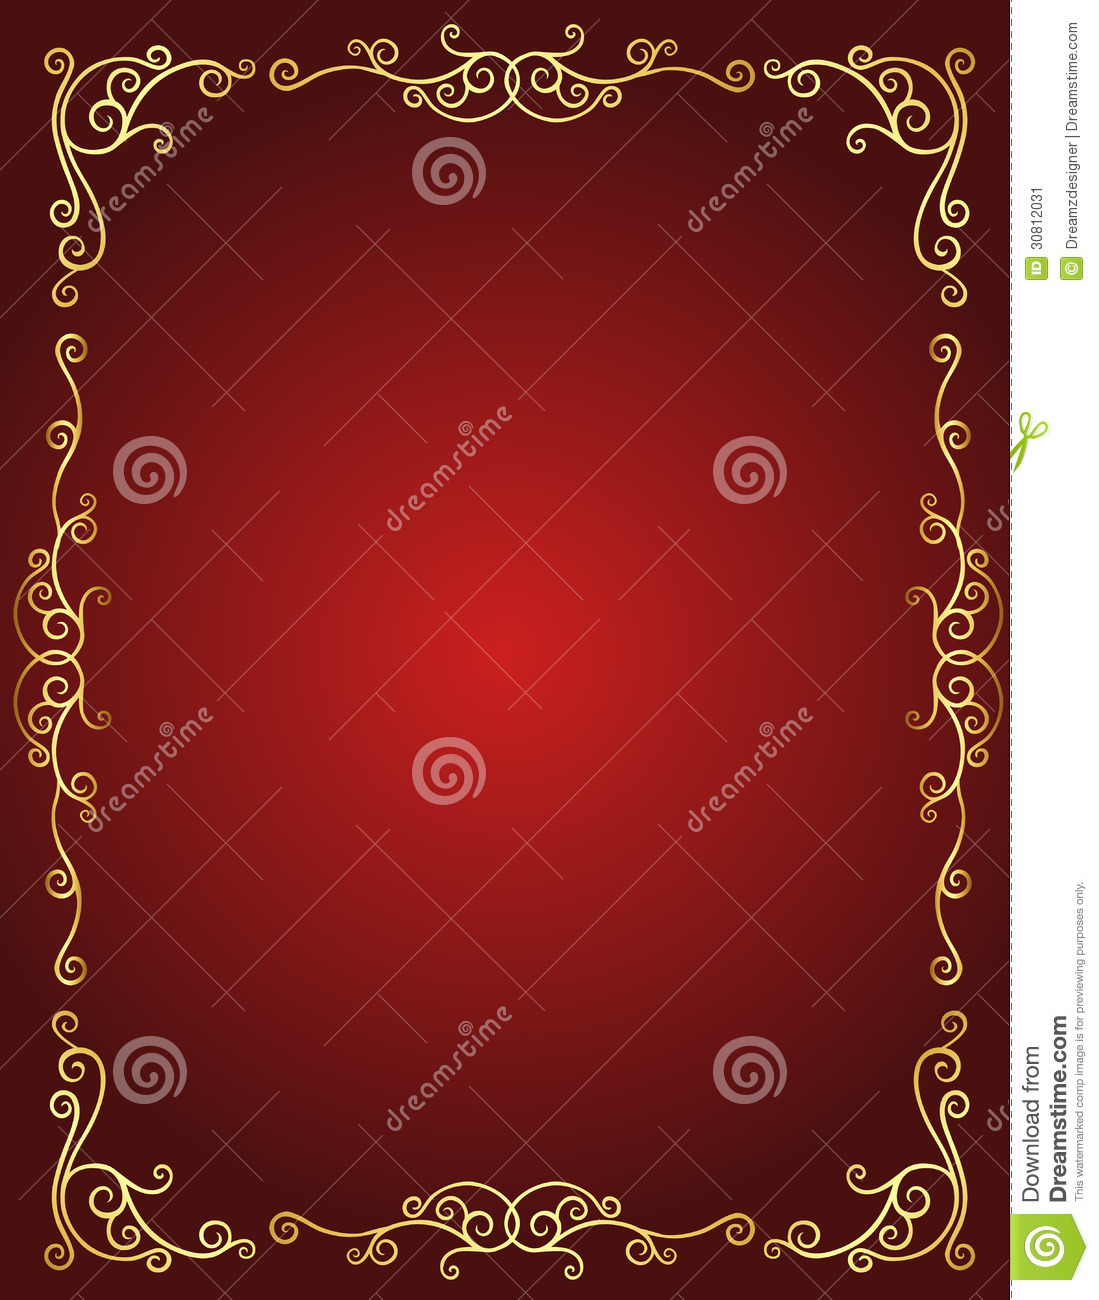 Wedding invitation border in red and gold stock vector download wedding invitation border in red and gold stock vector illustration of design business stopboris